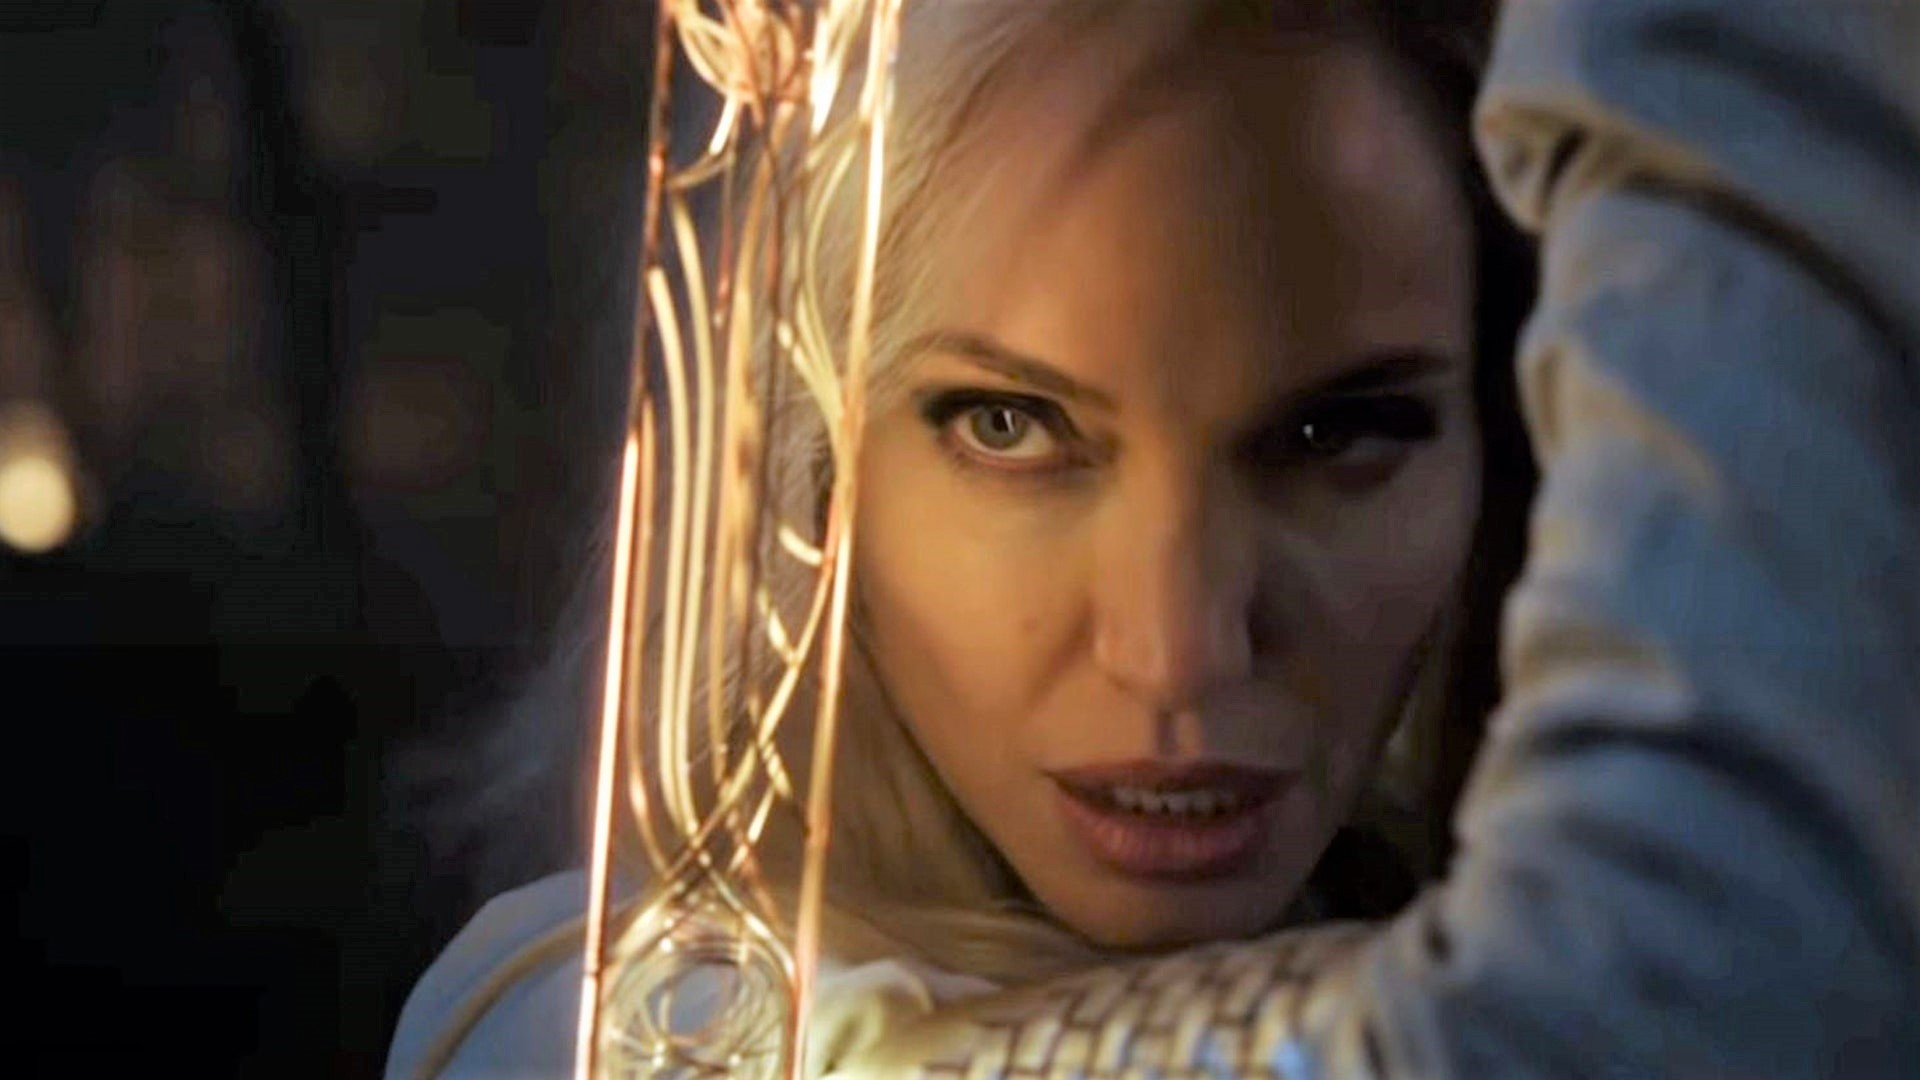 'Eternals', a new Marvel movie with Angelina Jolie and other superstars